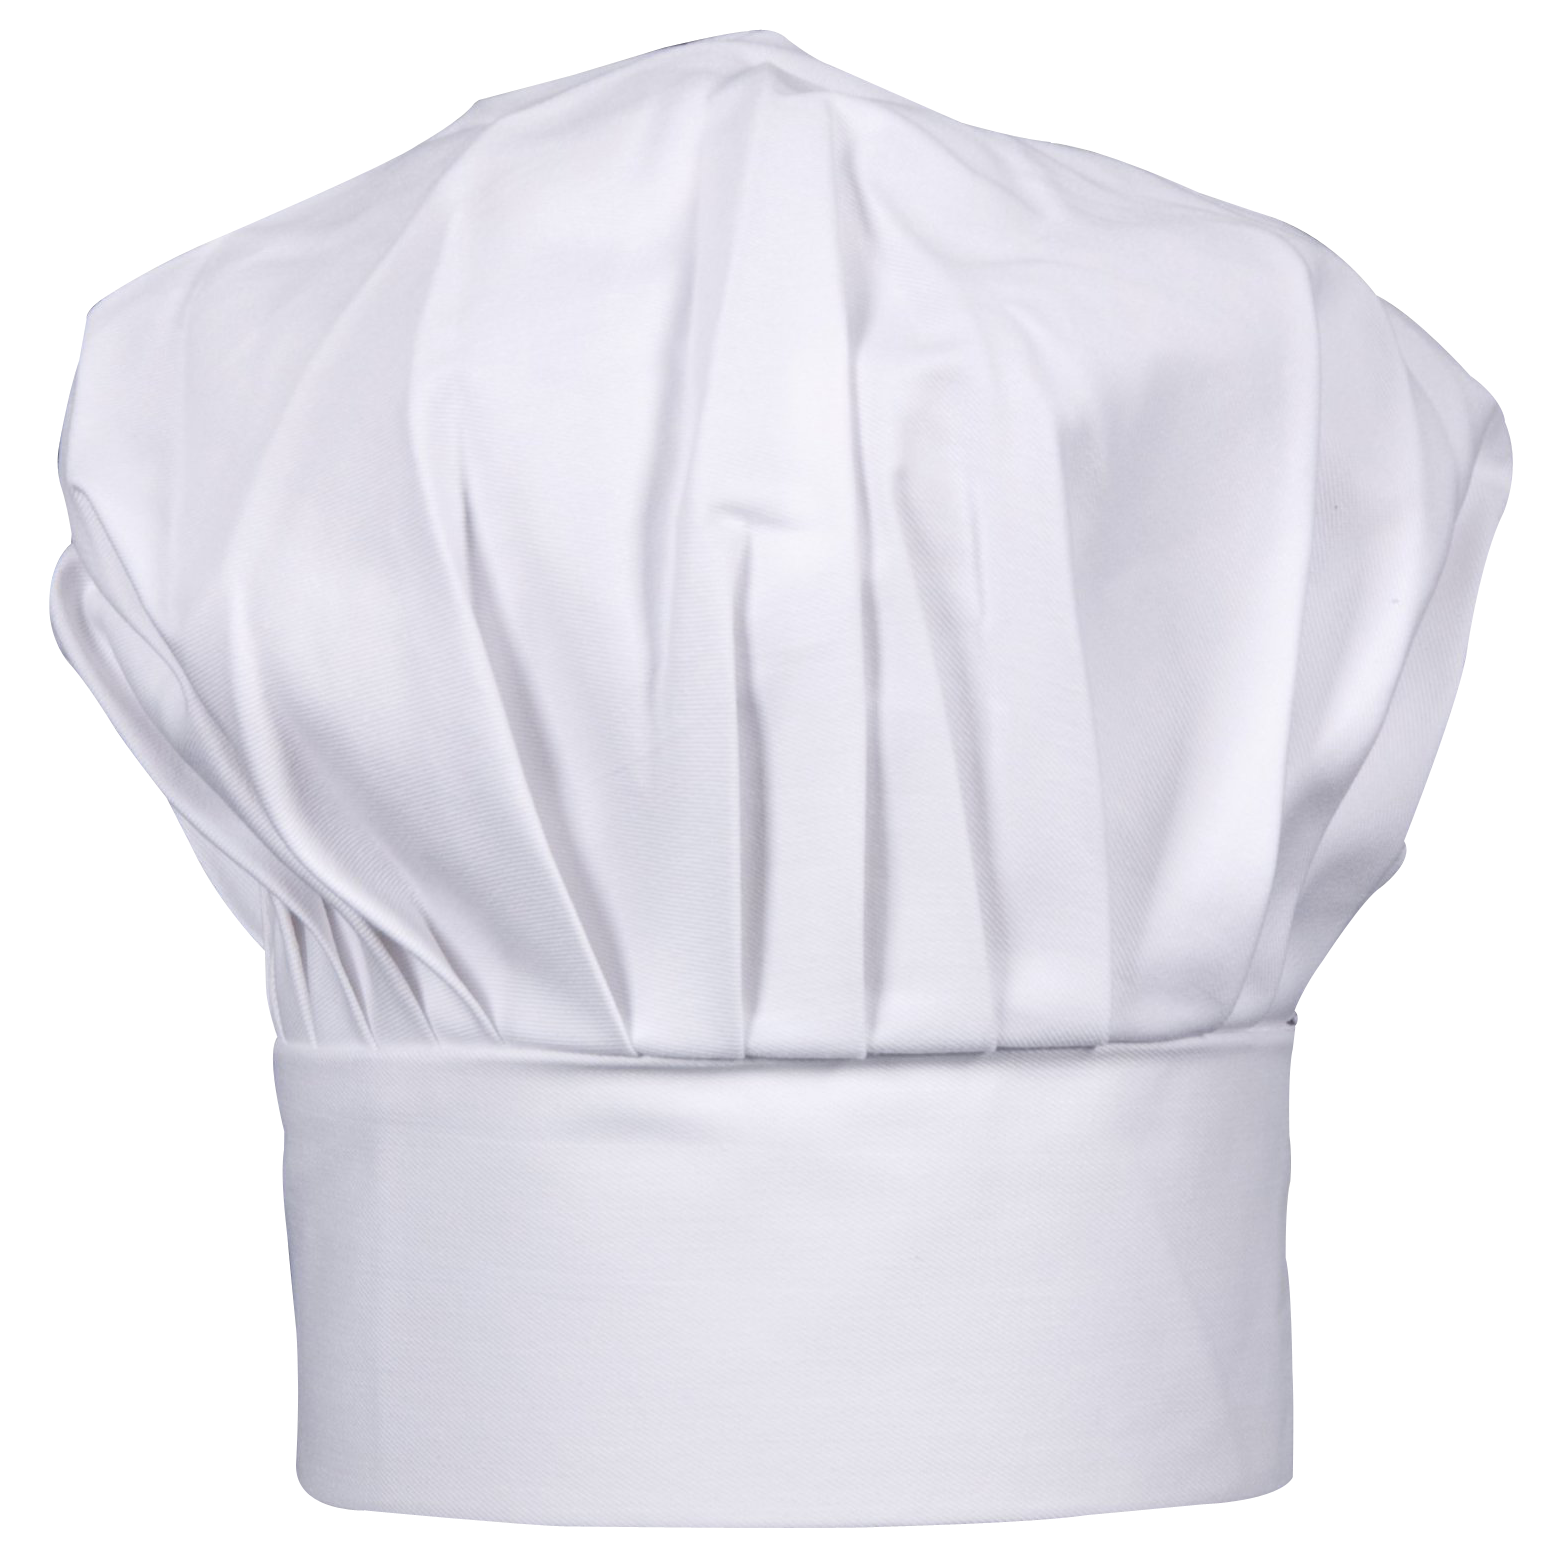 Hat chef png.